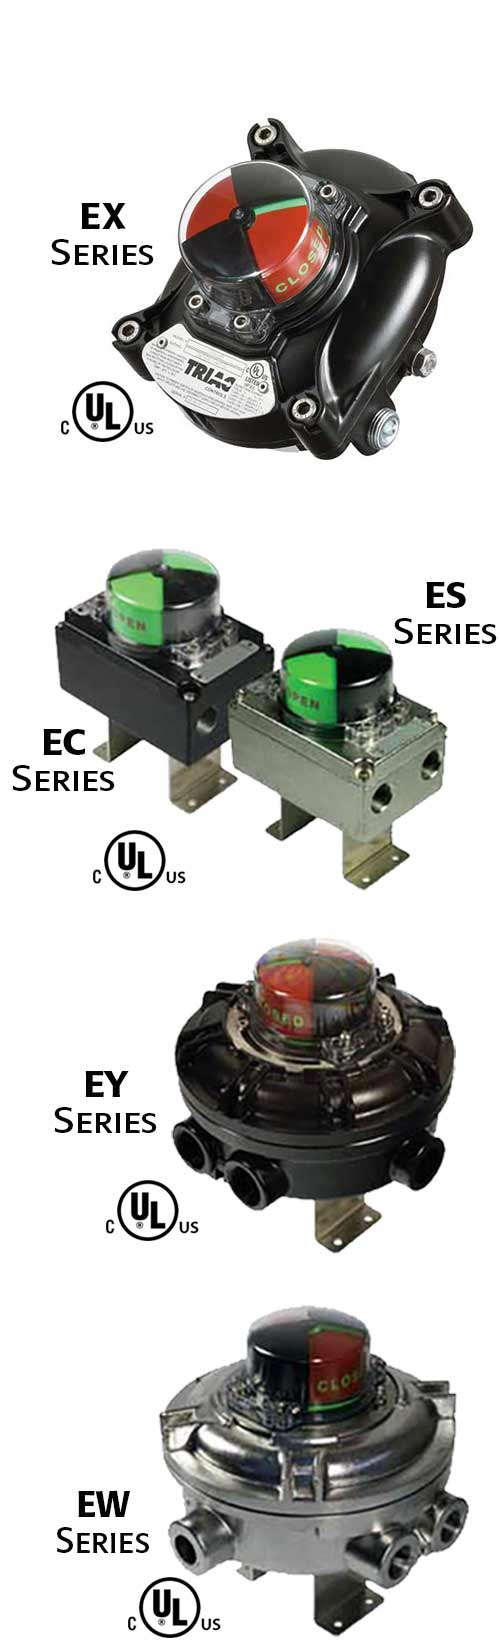 EX, EC, ES, EY, EW Series: UL Listed Limit Switches